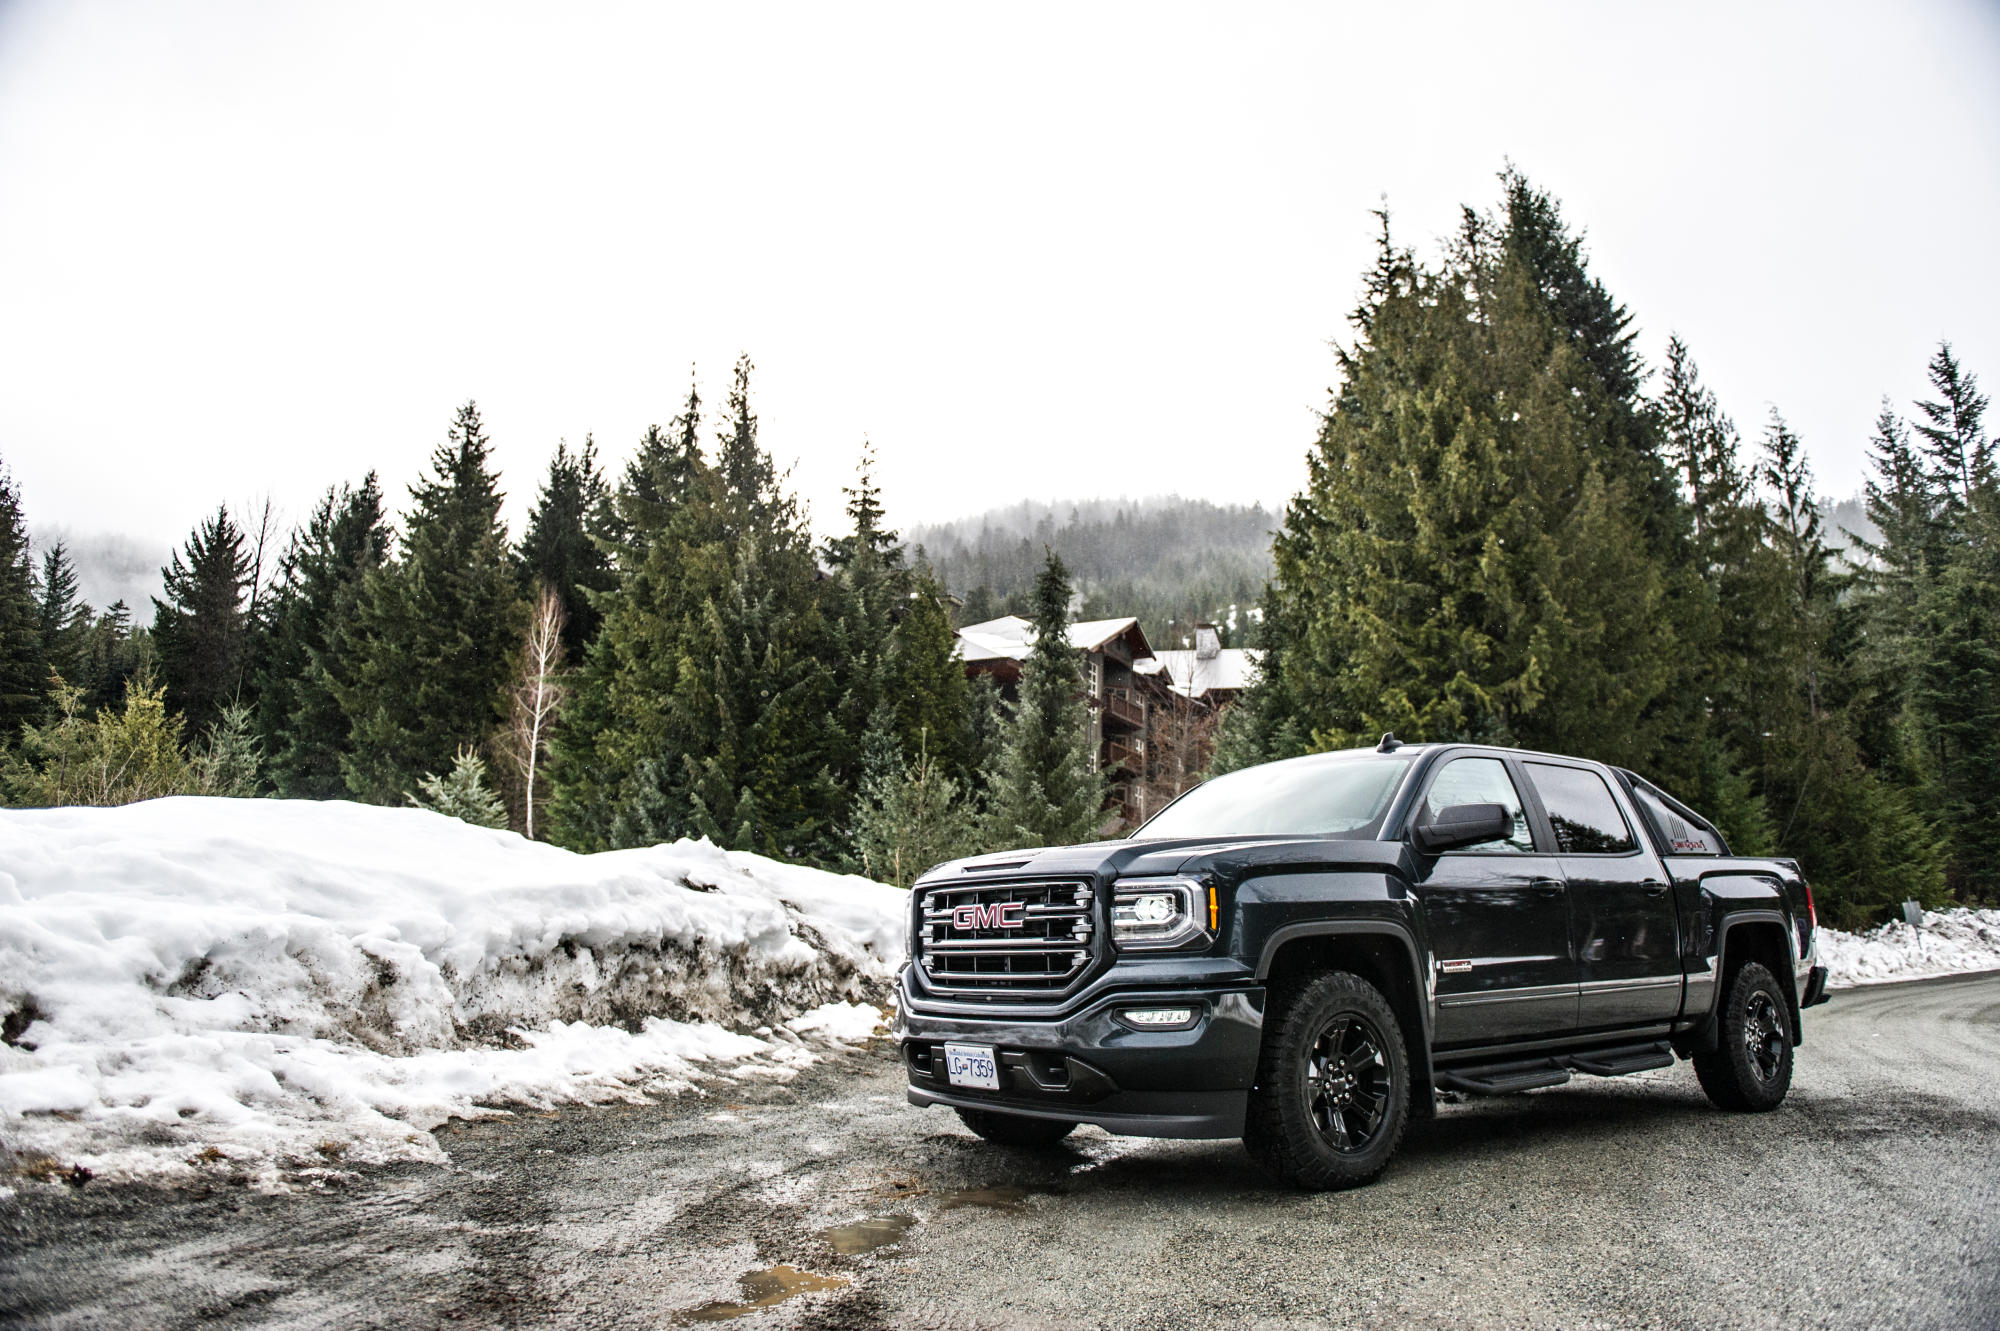 THE 2017 GMC SIERRA ALL TERRAIN X